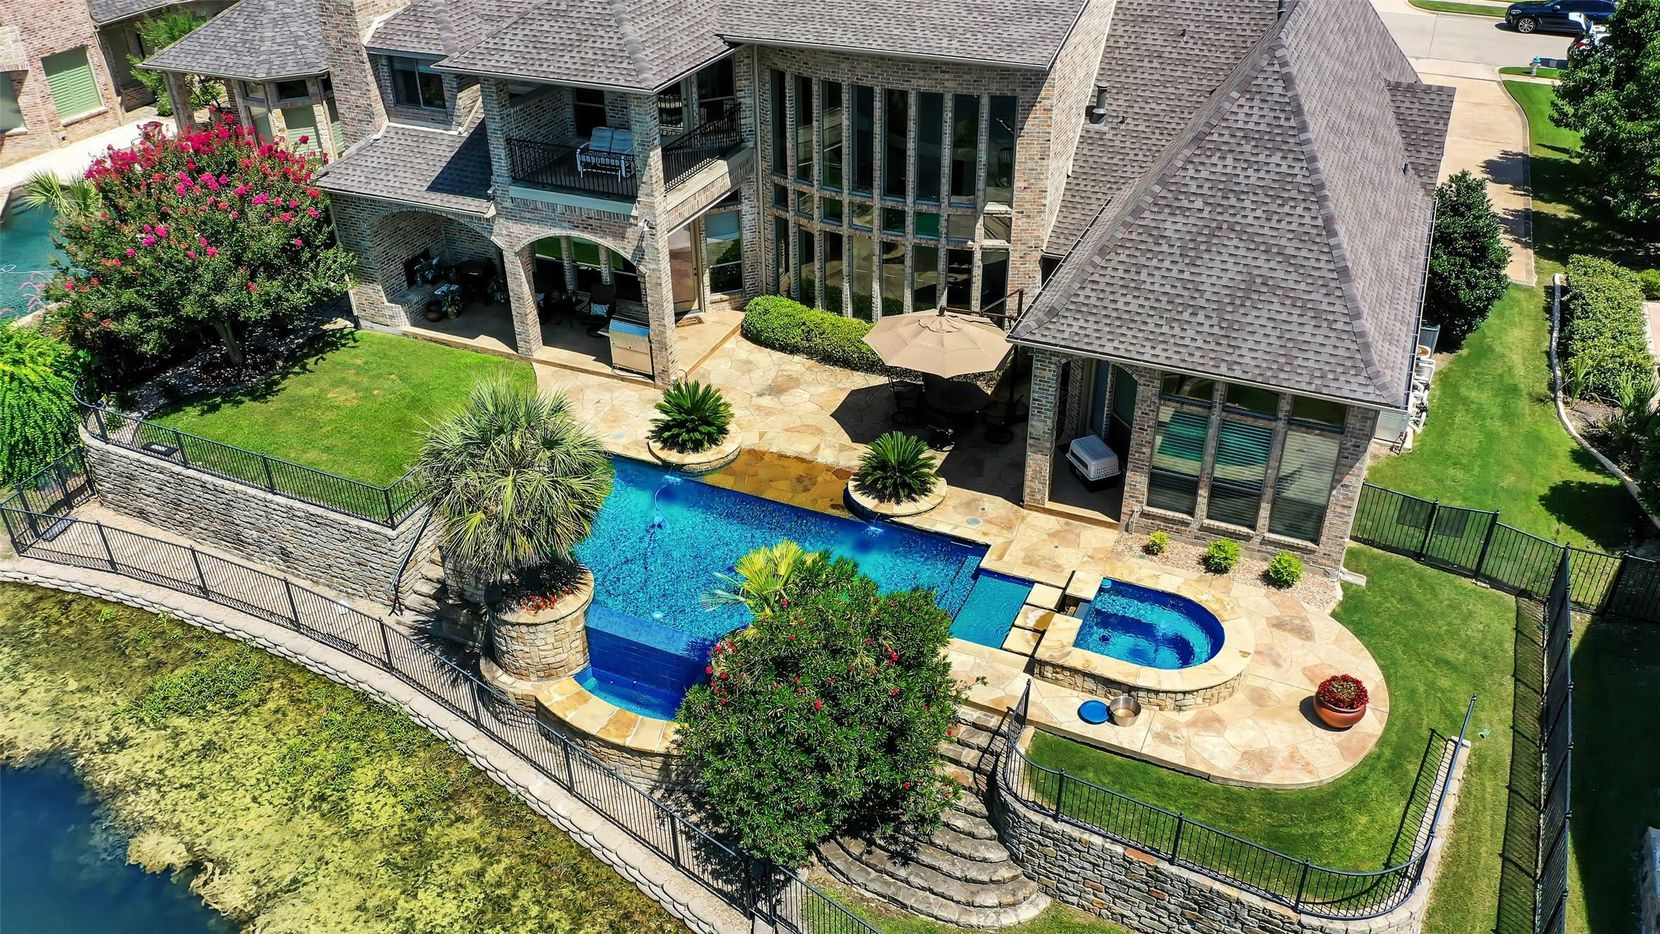 The estate at 9 Waters Edge Court in Heath's Buffalo Creek community has a negative-edge pool/spa and overlooks the 6th tee of Buffalo Creek Golf Course.